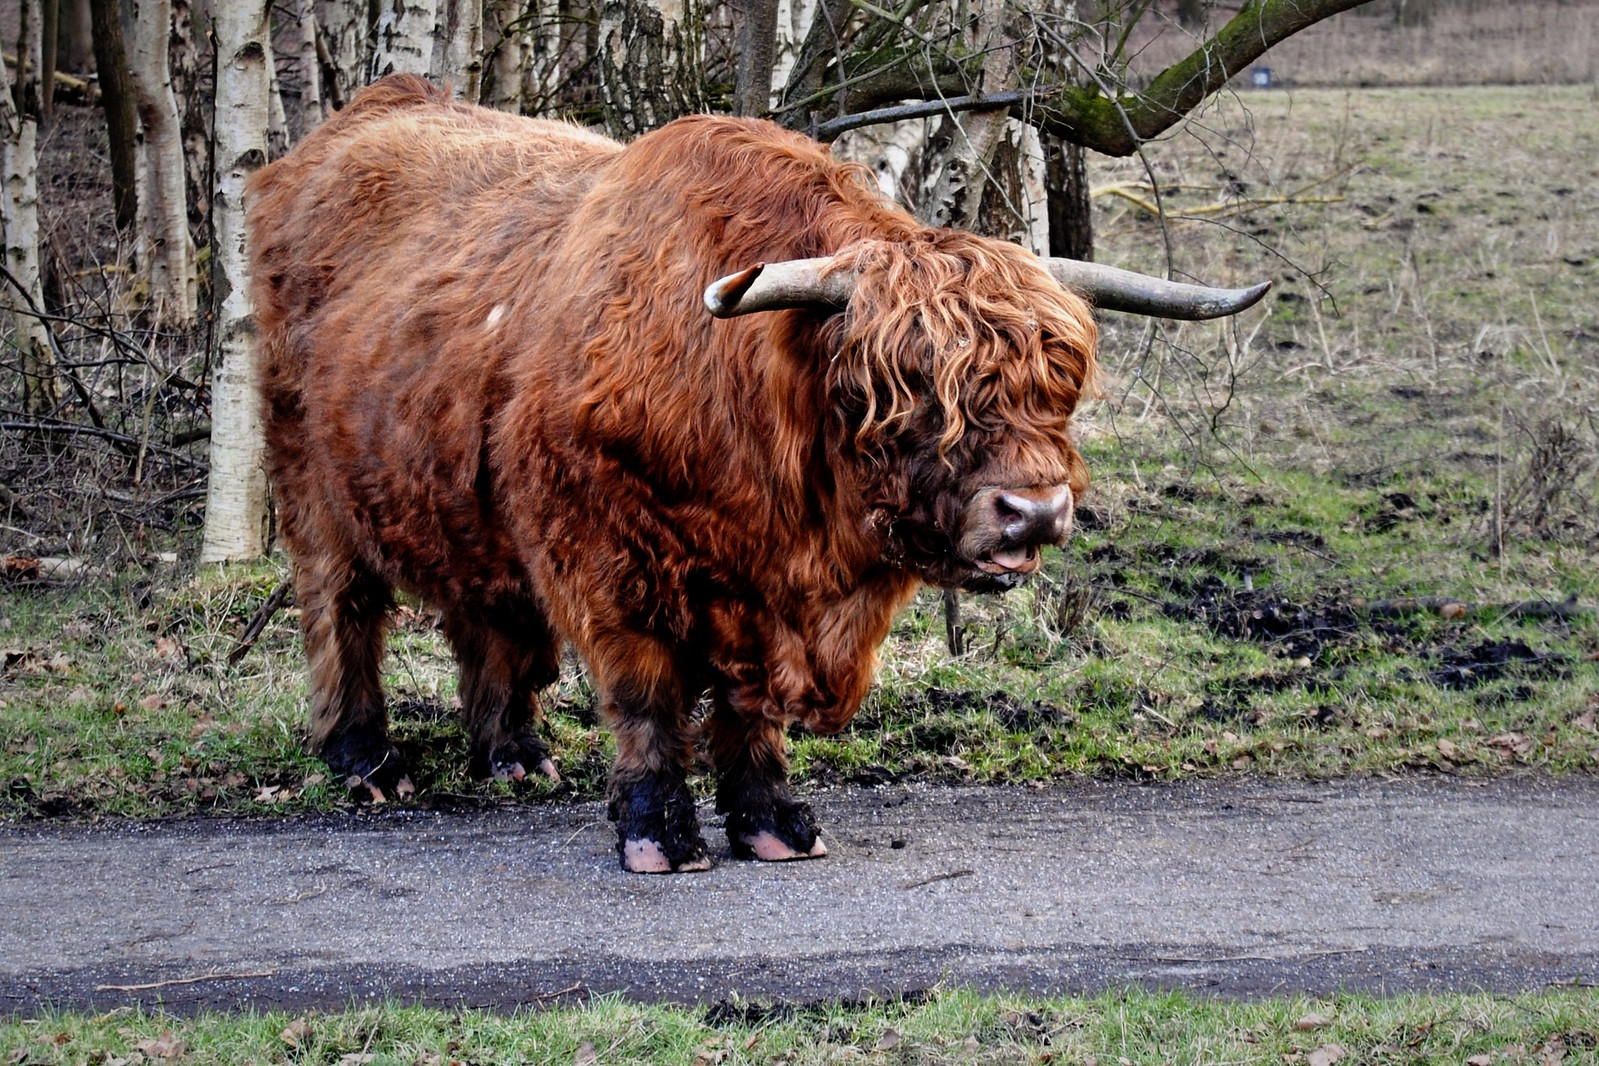 A Scottish Highlander in the Amsterdamse Bos